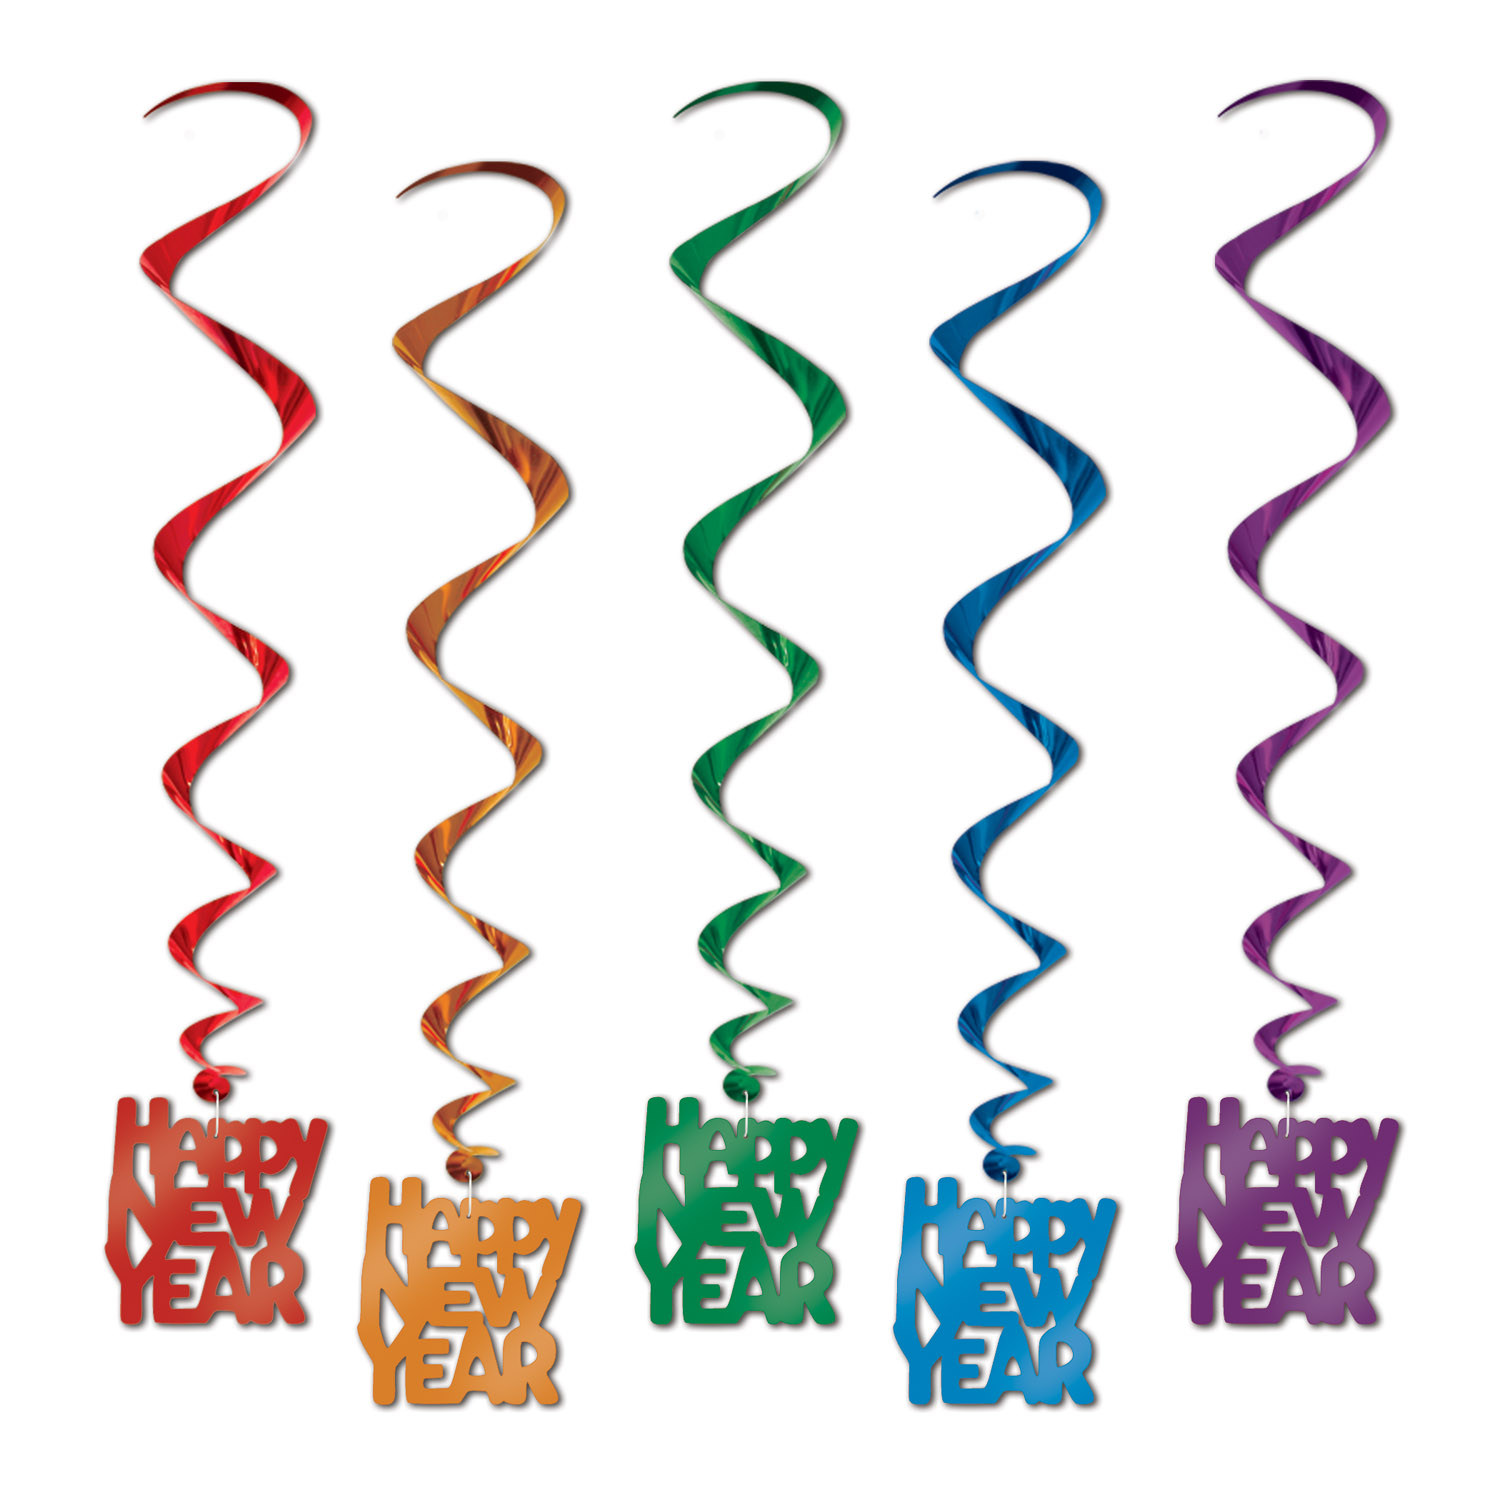 Happy New Year Whirls (Pack of 30) Whirls, Multi Color, Happy New Year, NYE, ceiling, decor, bulk